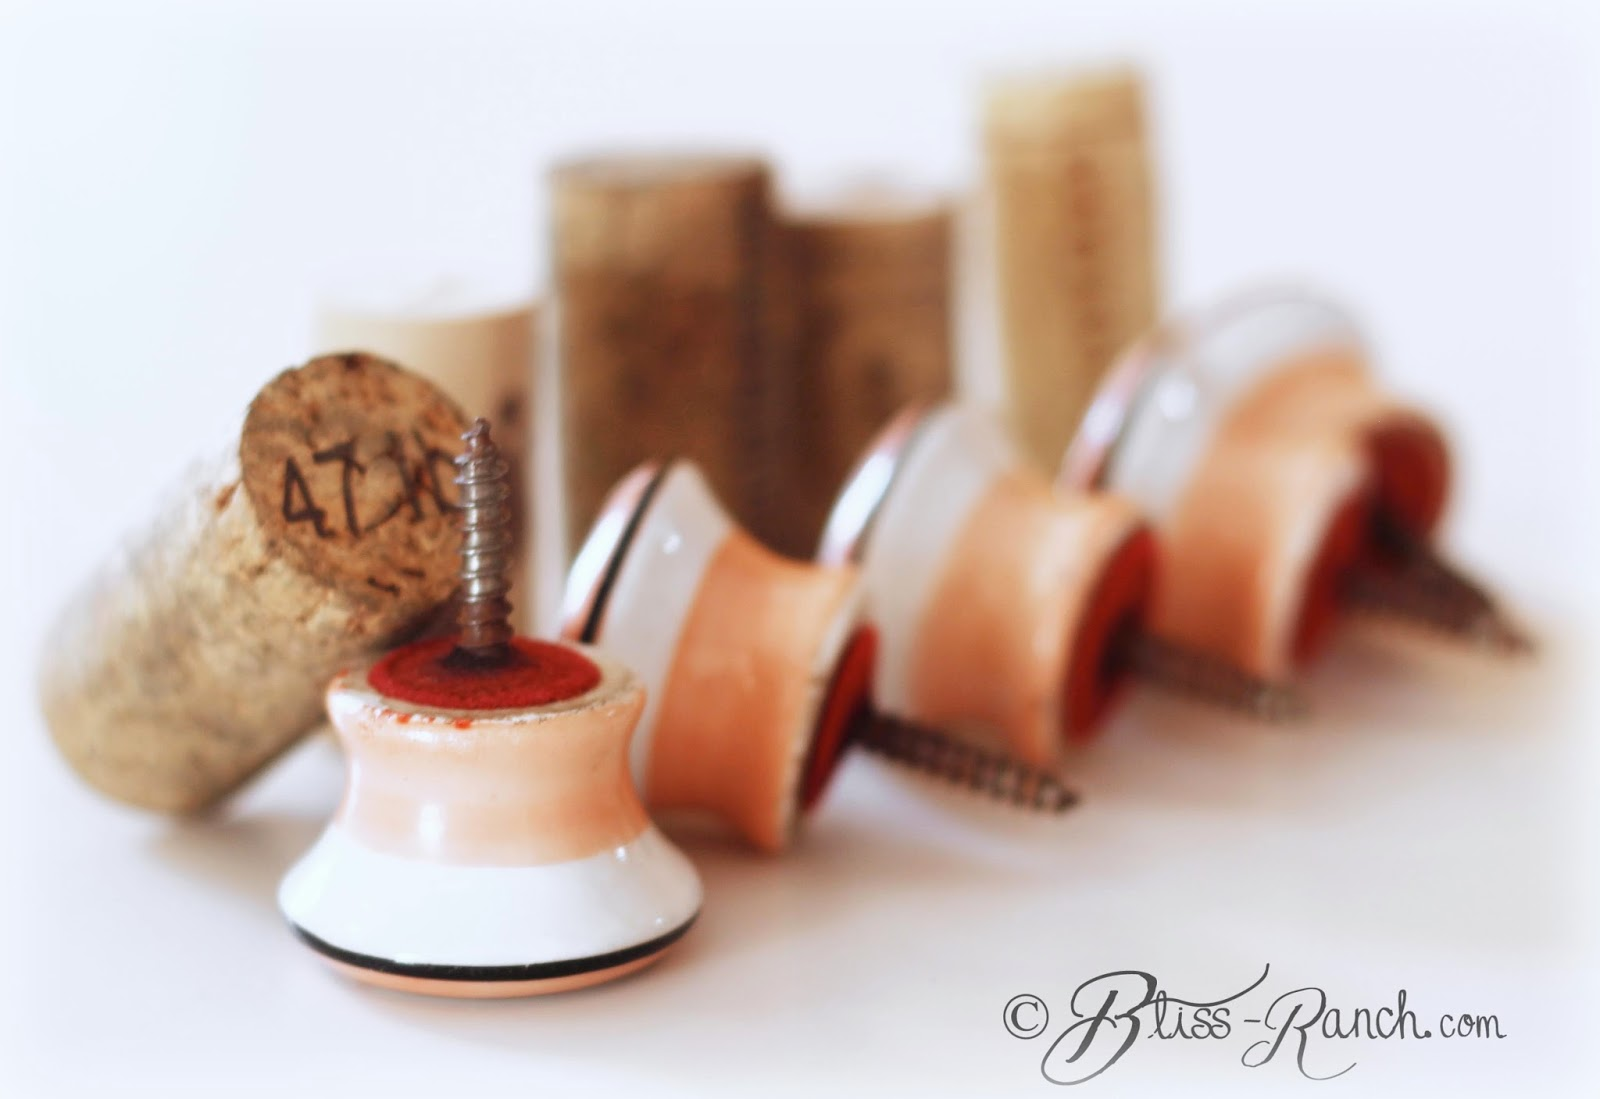 Vintage Pump Organ Knobs Turned Wine Stoppers Bliss-Ranch